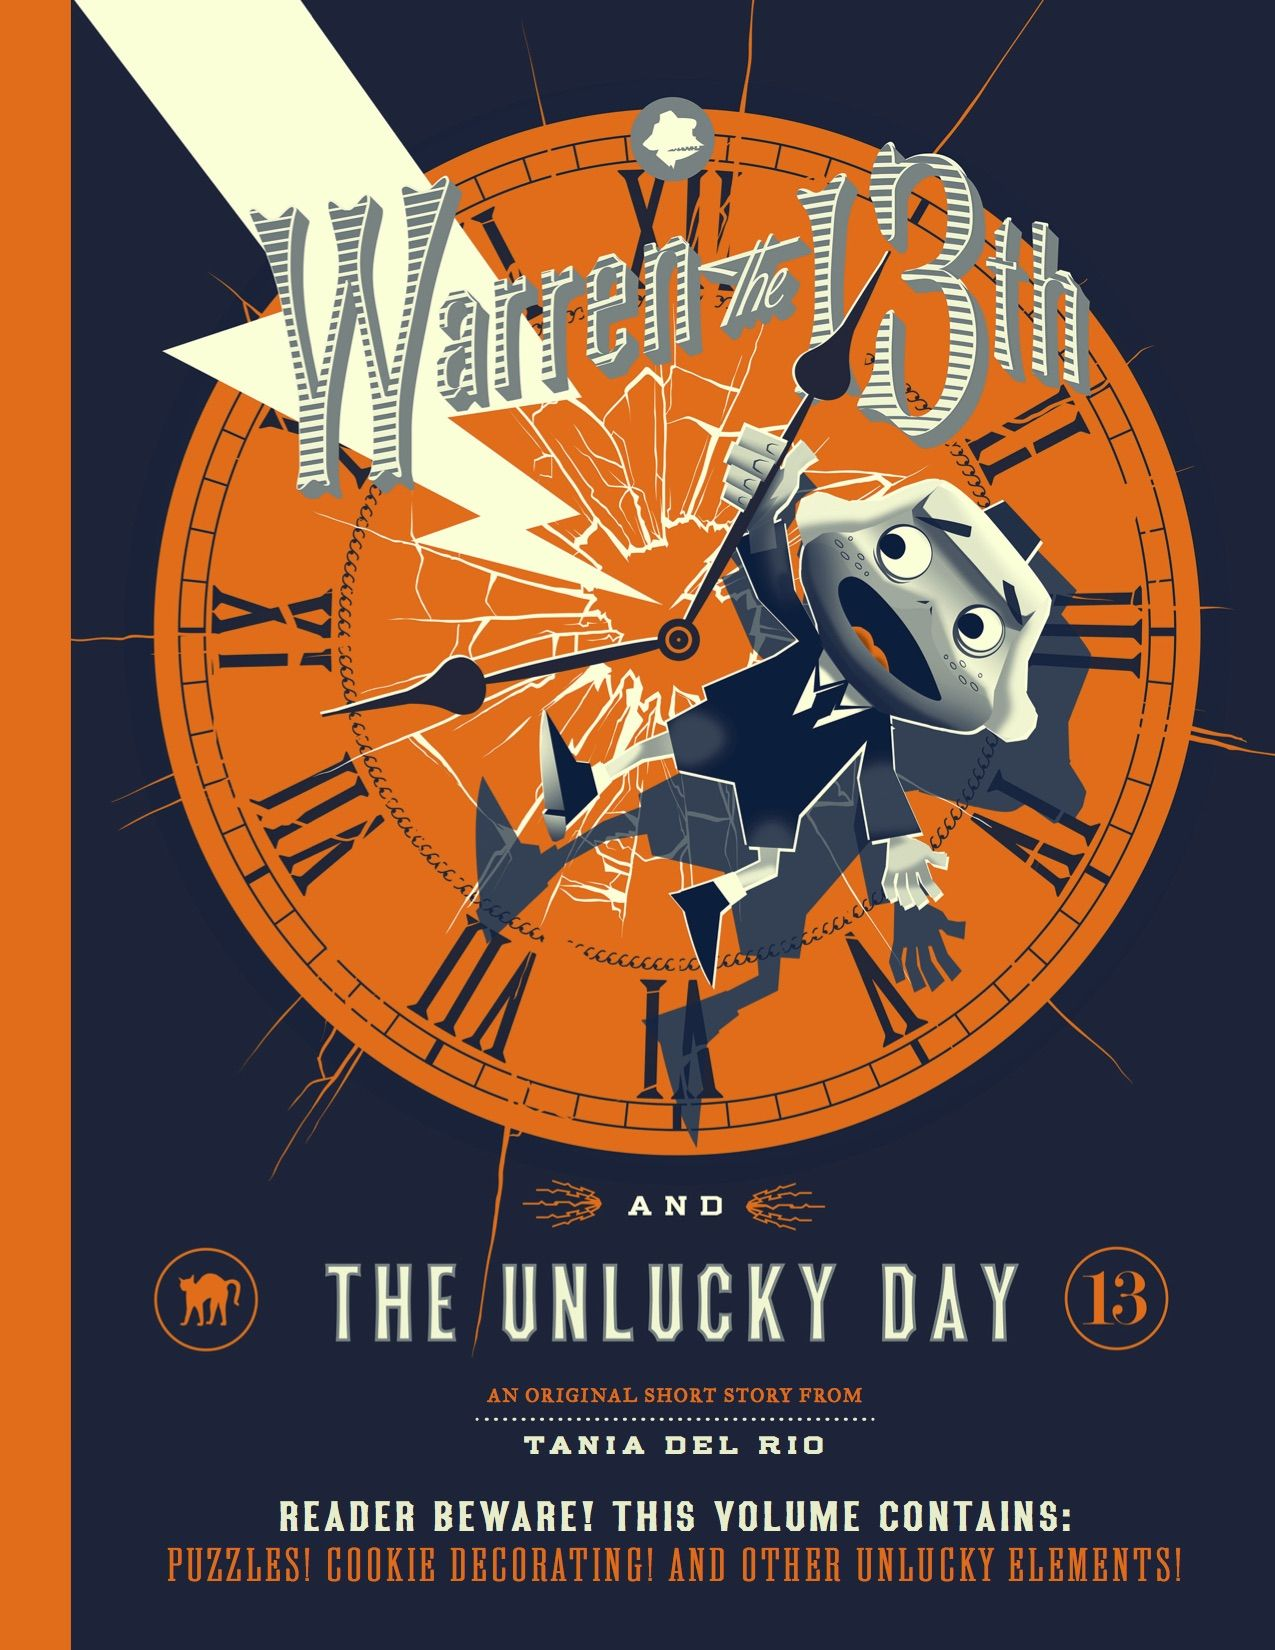 Warren The 13th And The Unlucky Day  An Original Story From Tania Del Rio #